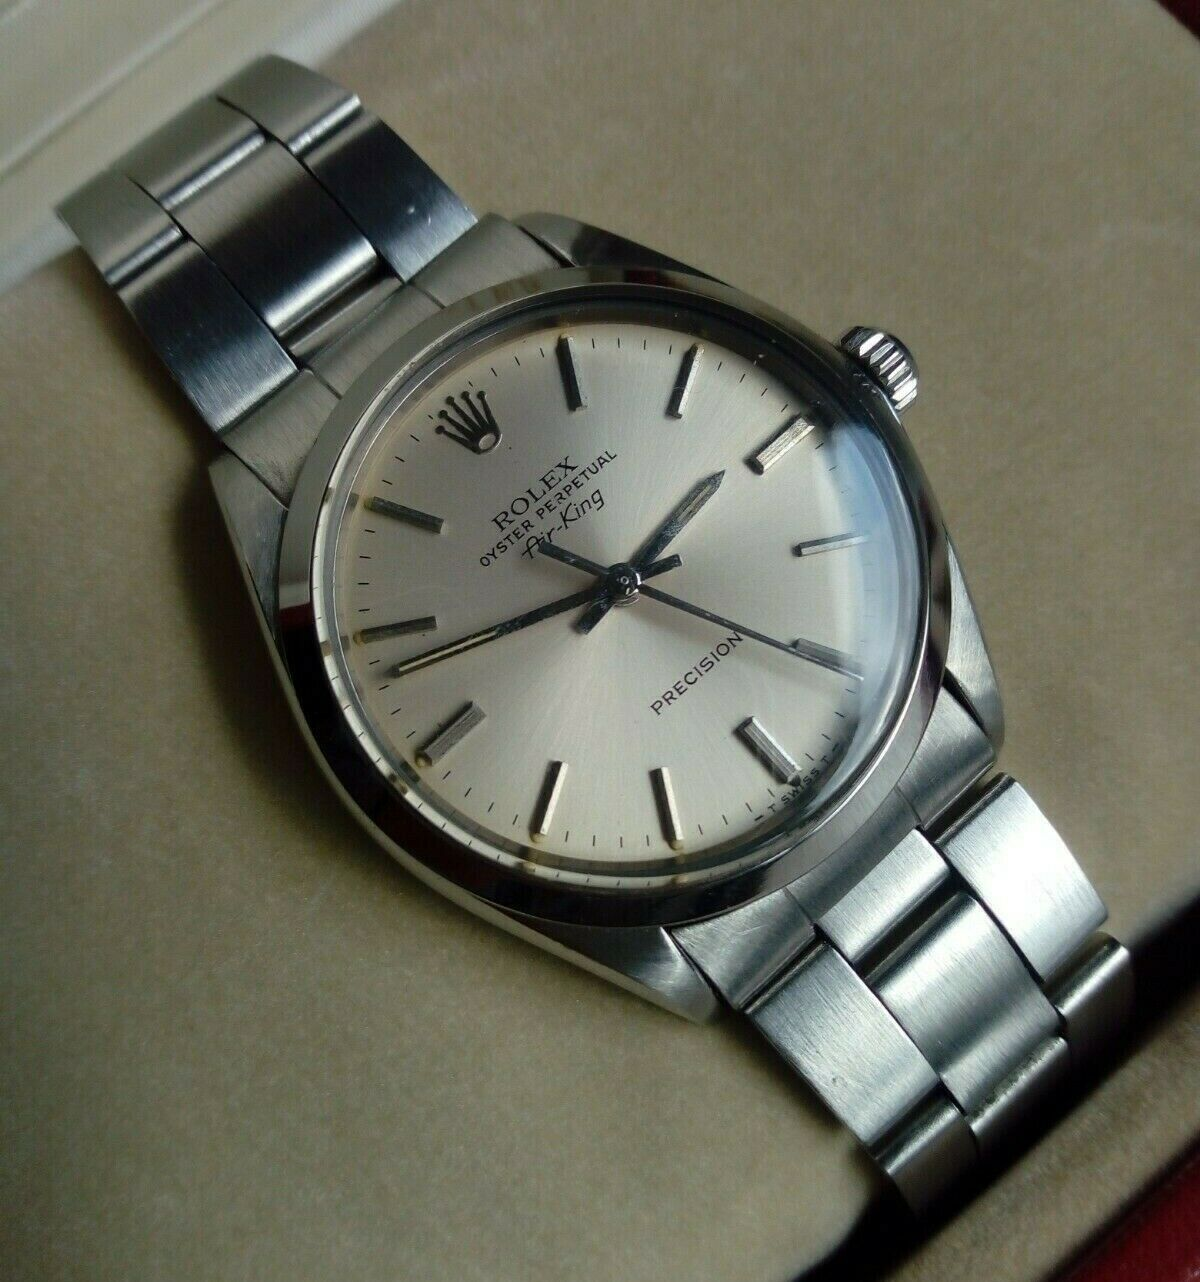 ROLEX AIR KING ref. 5500 cal. 1520 bracciale Oyster 7835